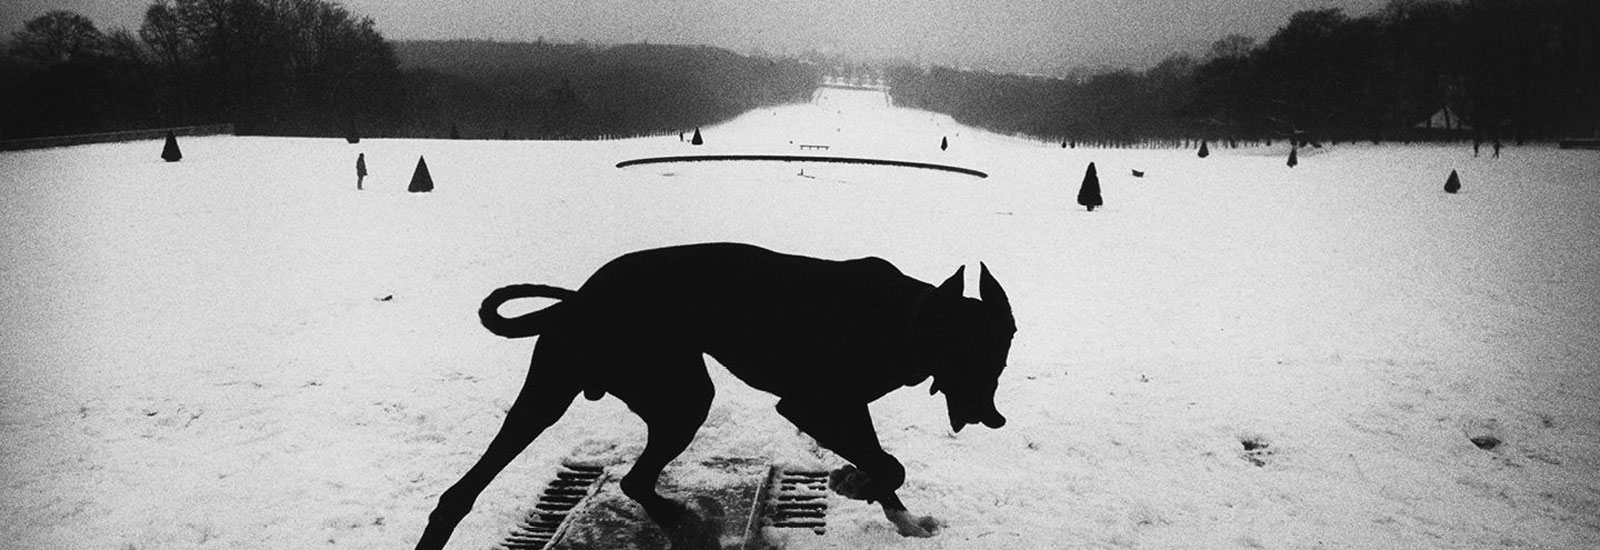 France, 1987 (detail) © Josef Koudelka / Magnum Photos